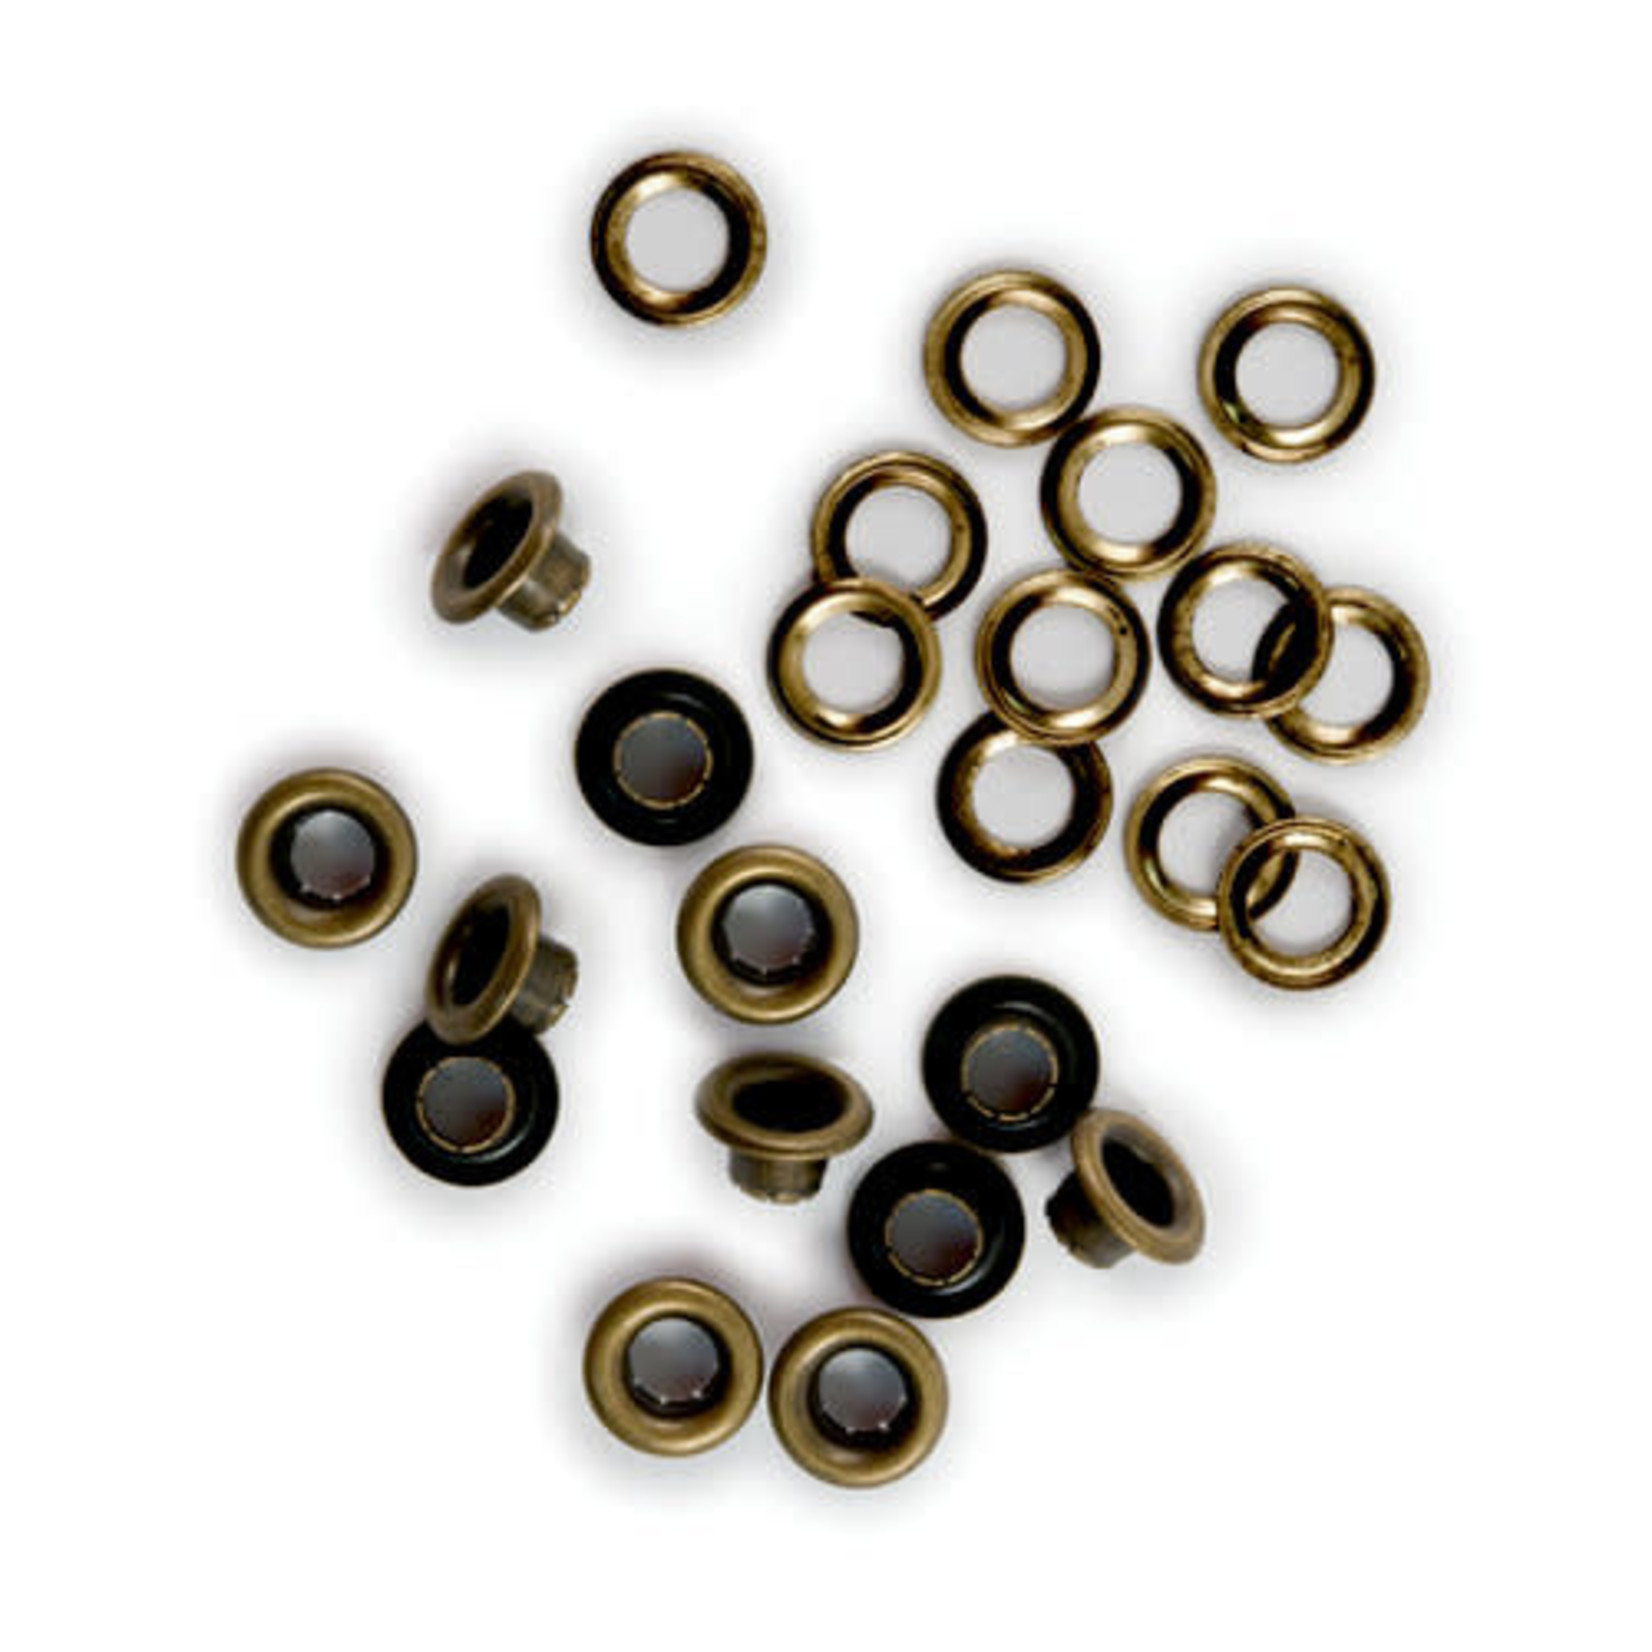 We R memory keepers We R Memory Keepers - Eyelets & Washers Standard-Brass 60/Pkg